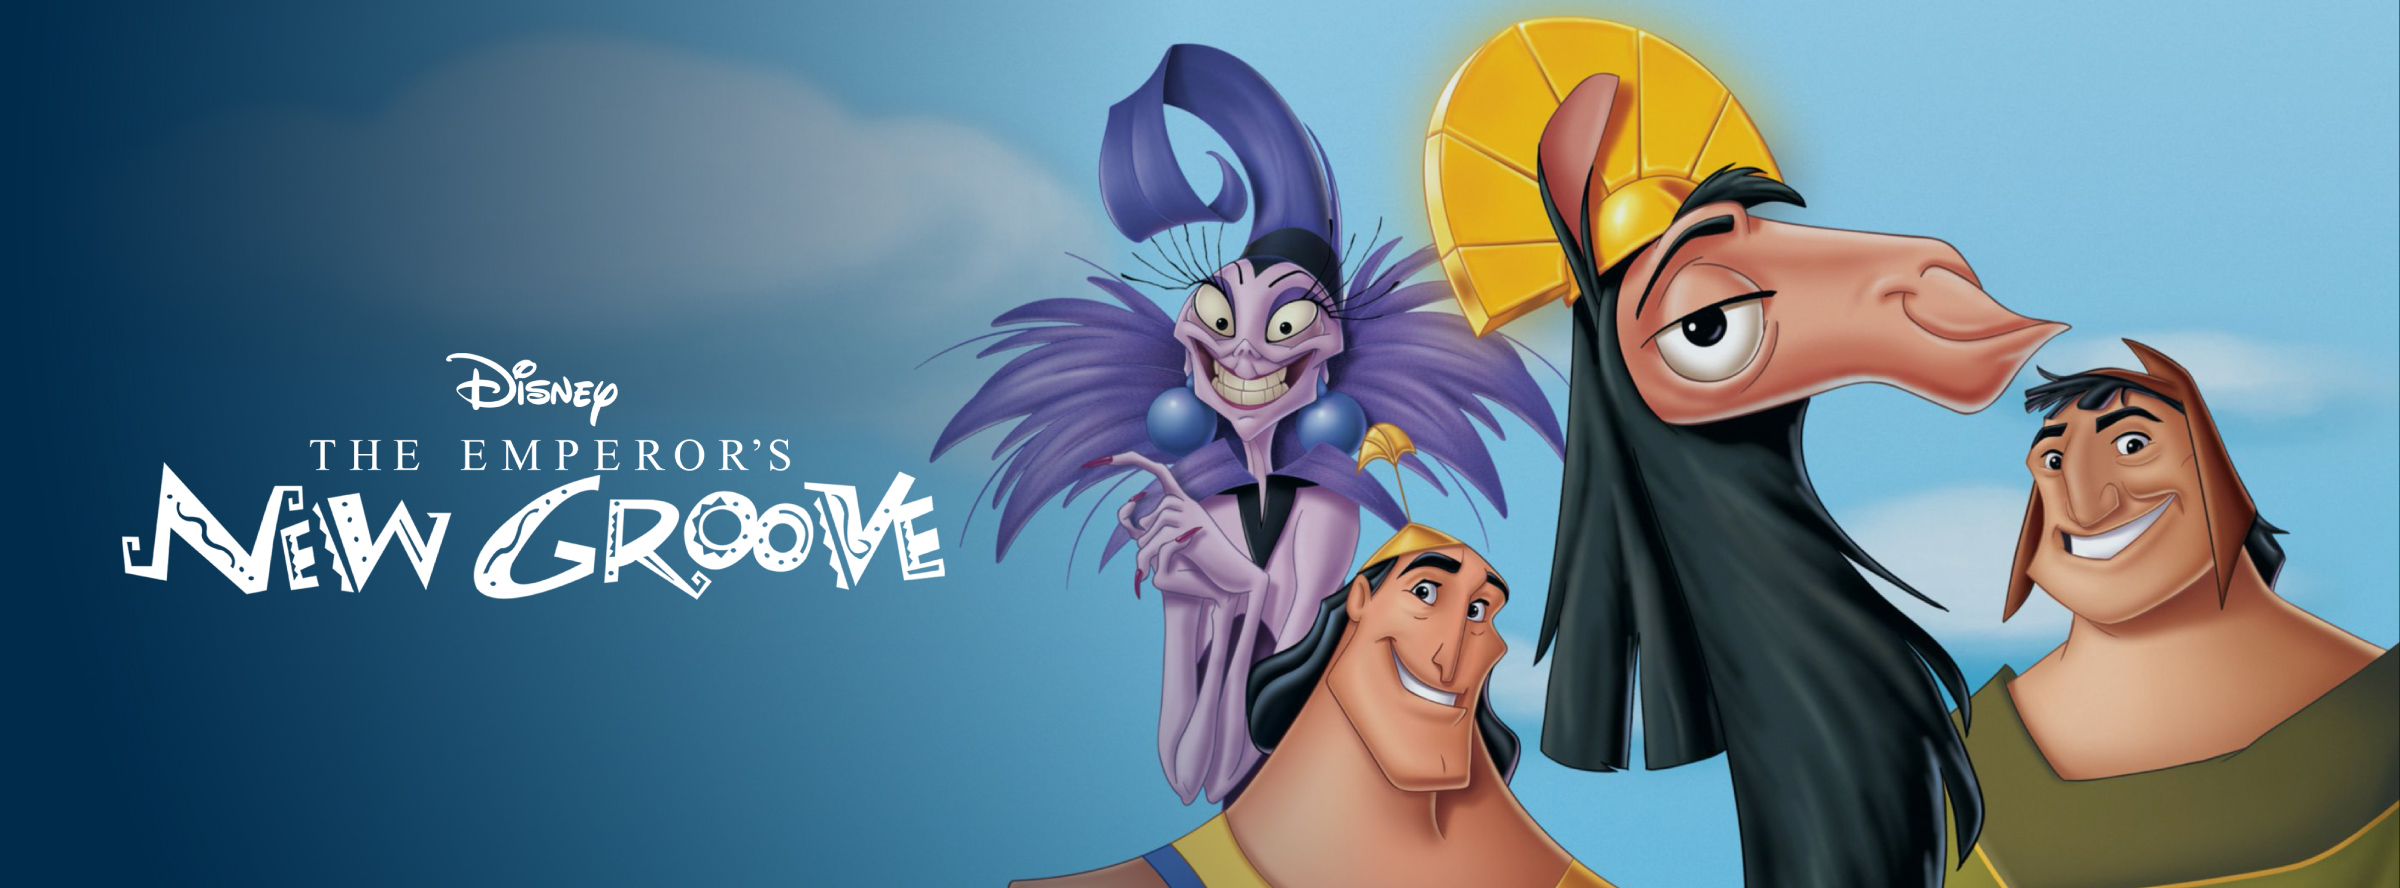 Slider Image for The Emperor's New Groove